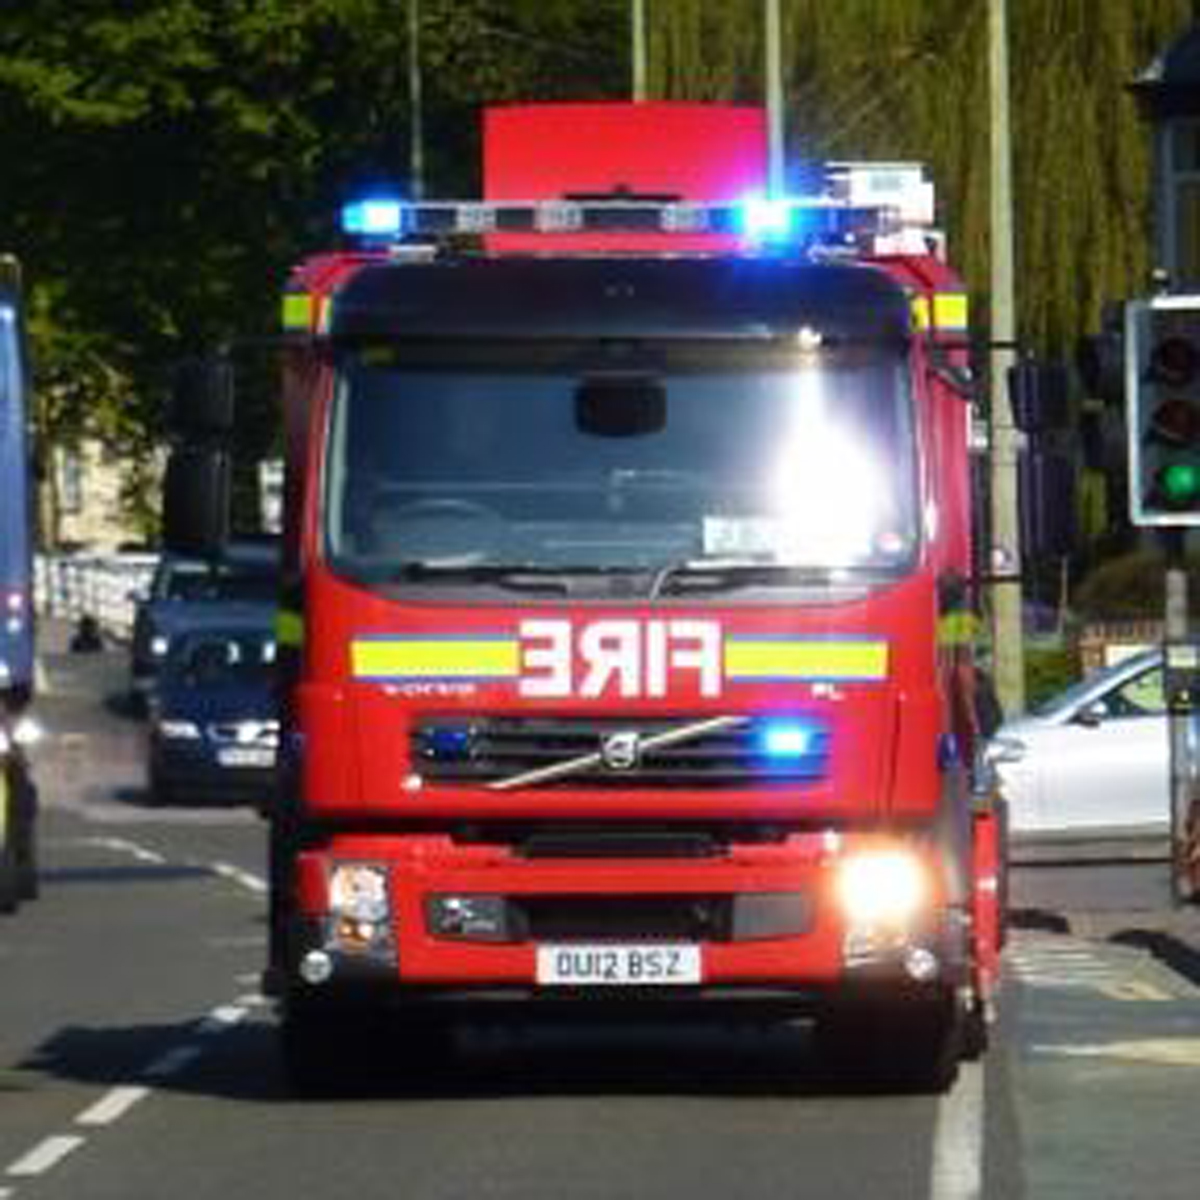 999 coverage kept up during firefighters' pensions strikes